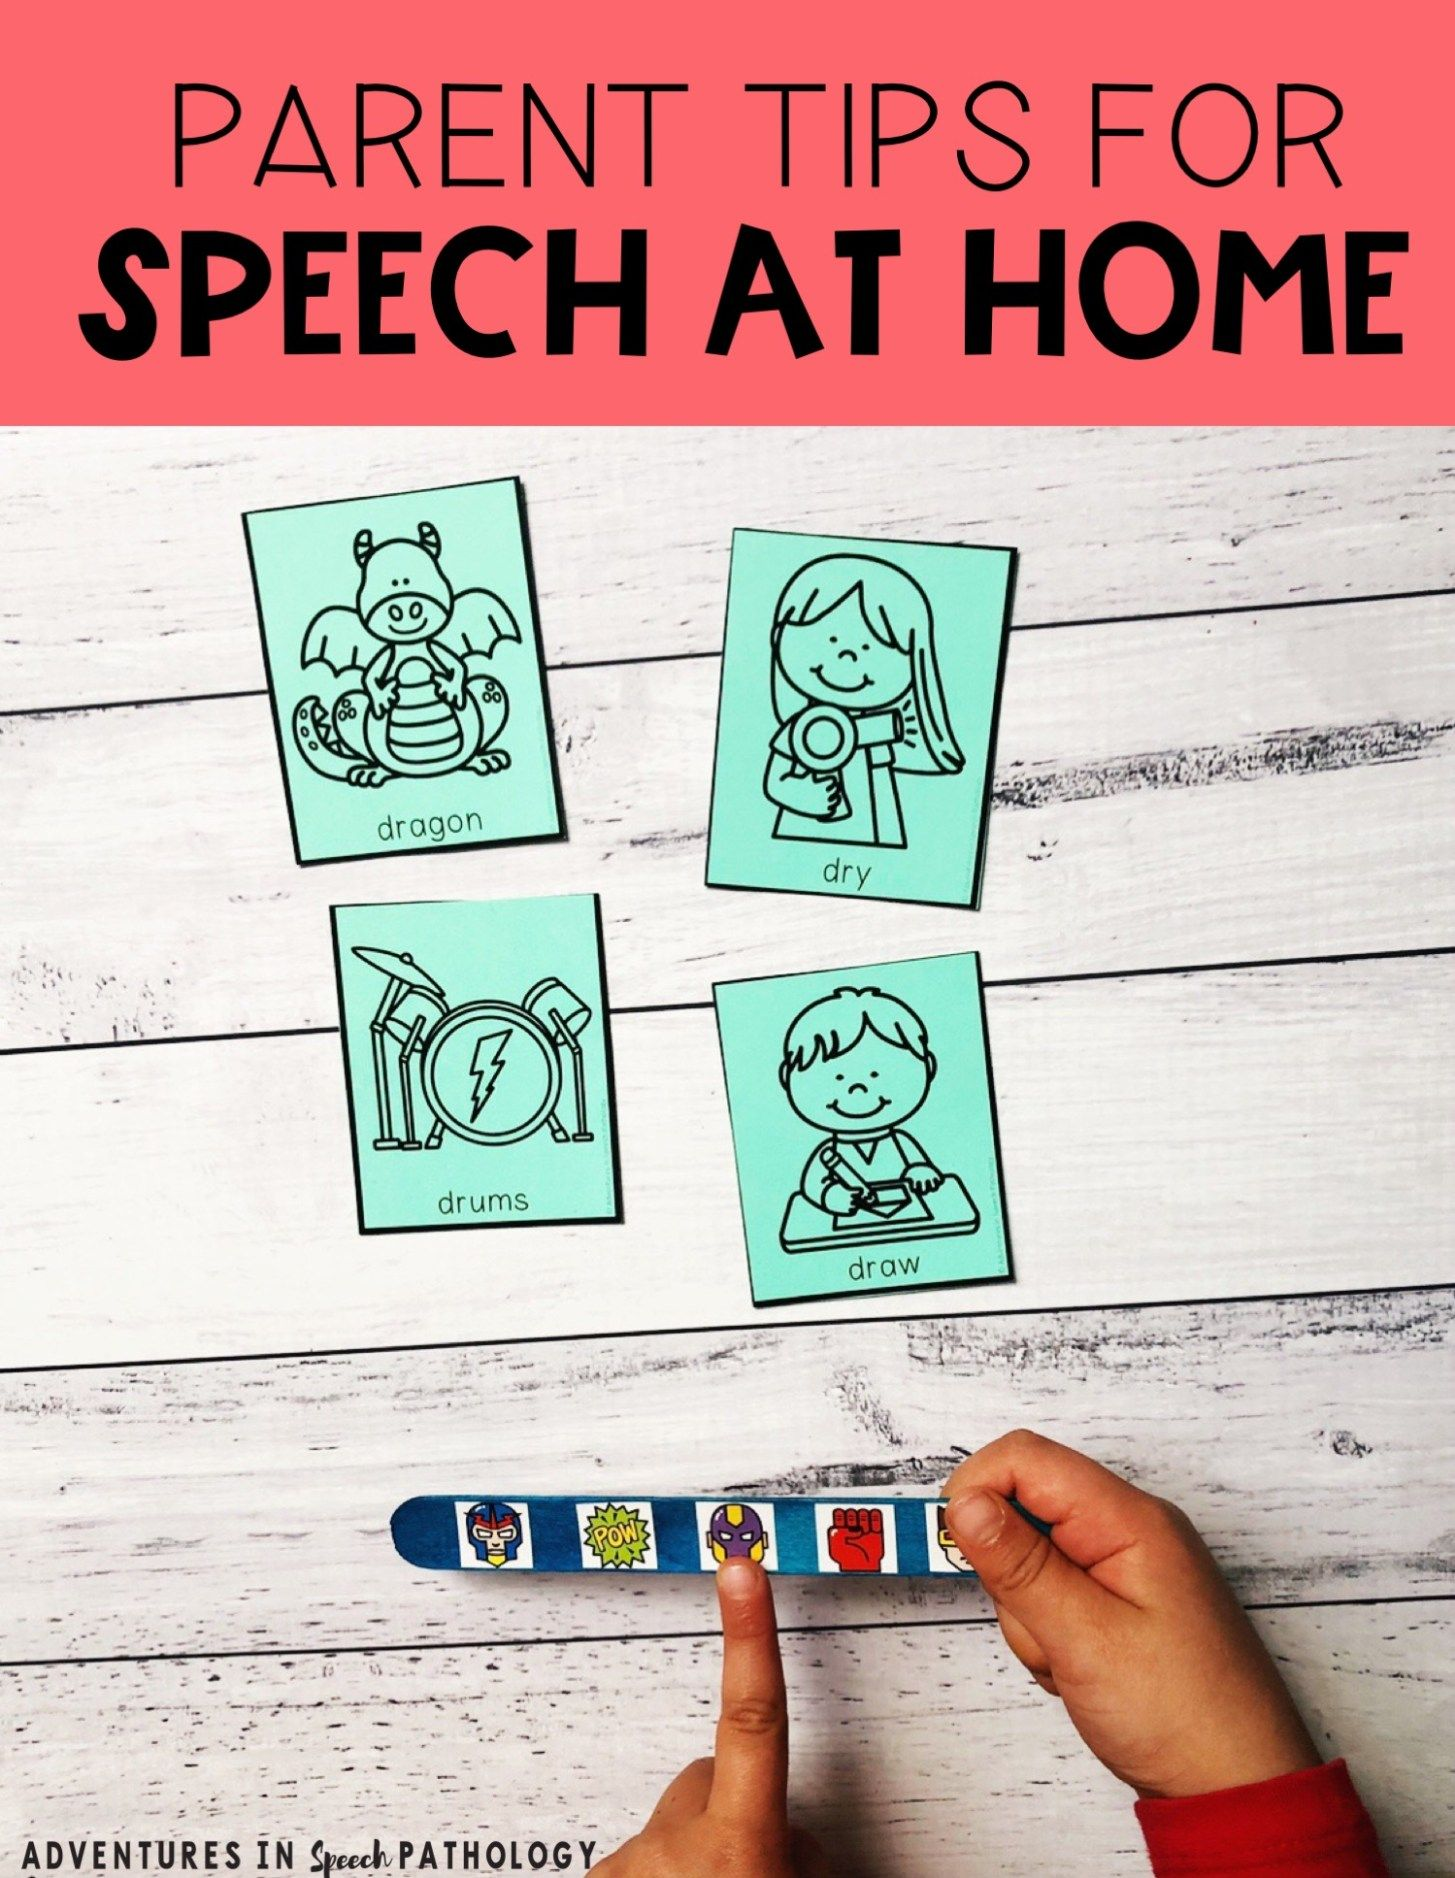 5 Fun Speech Therapy Ideas For Parents To Do At Home